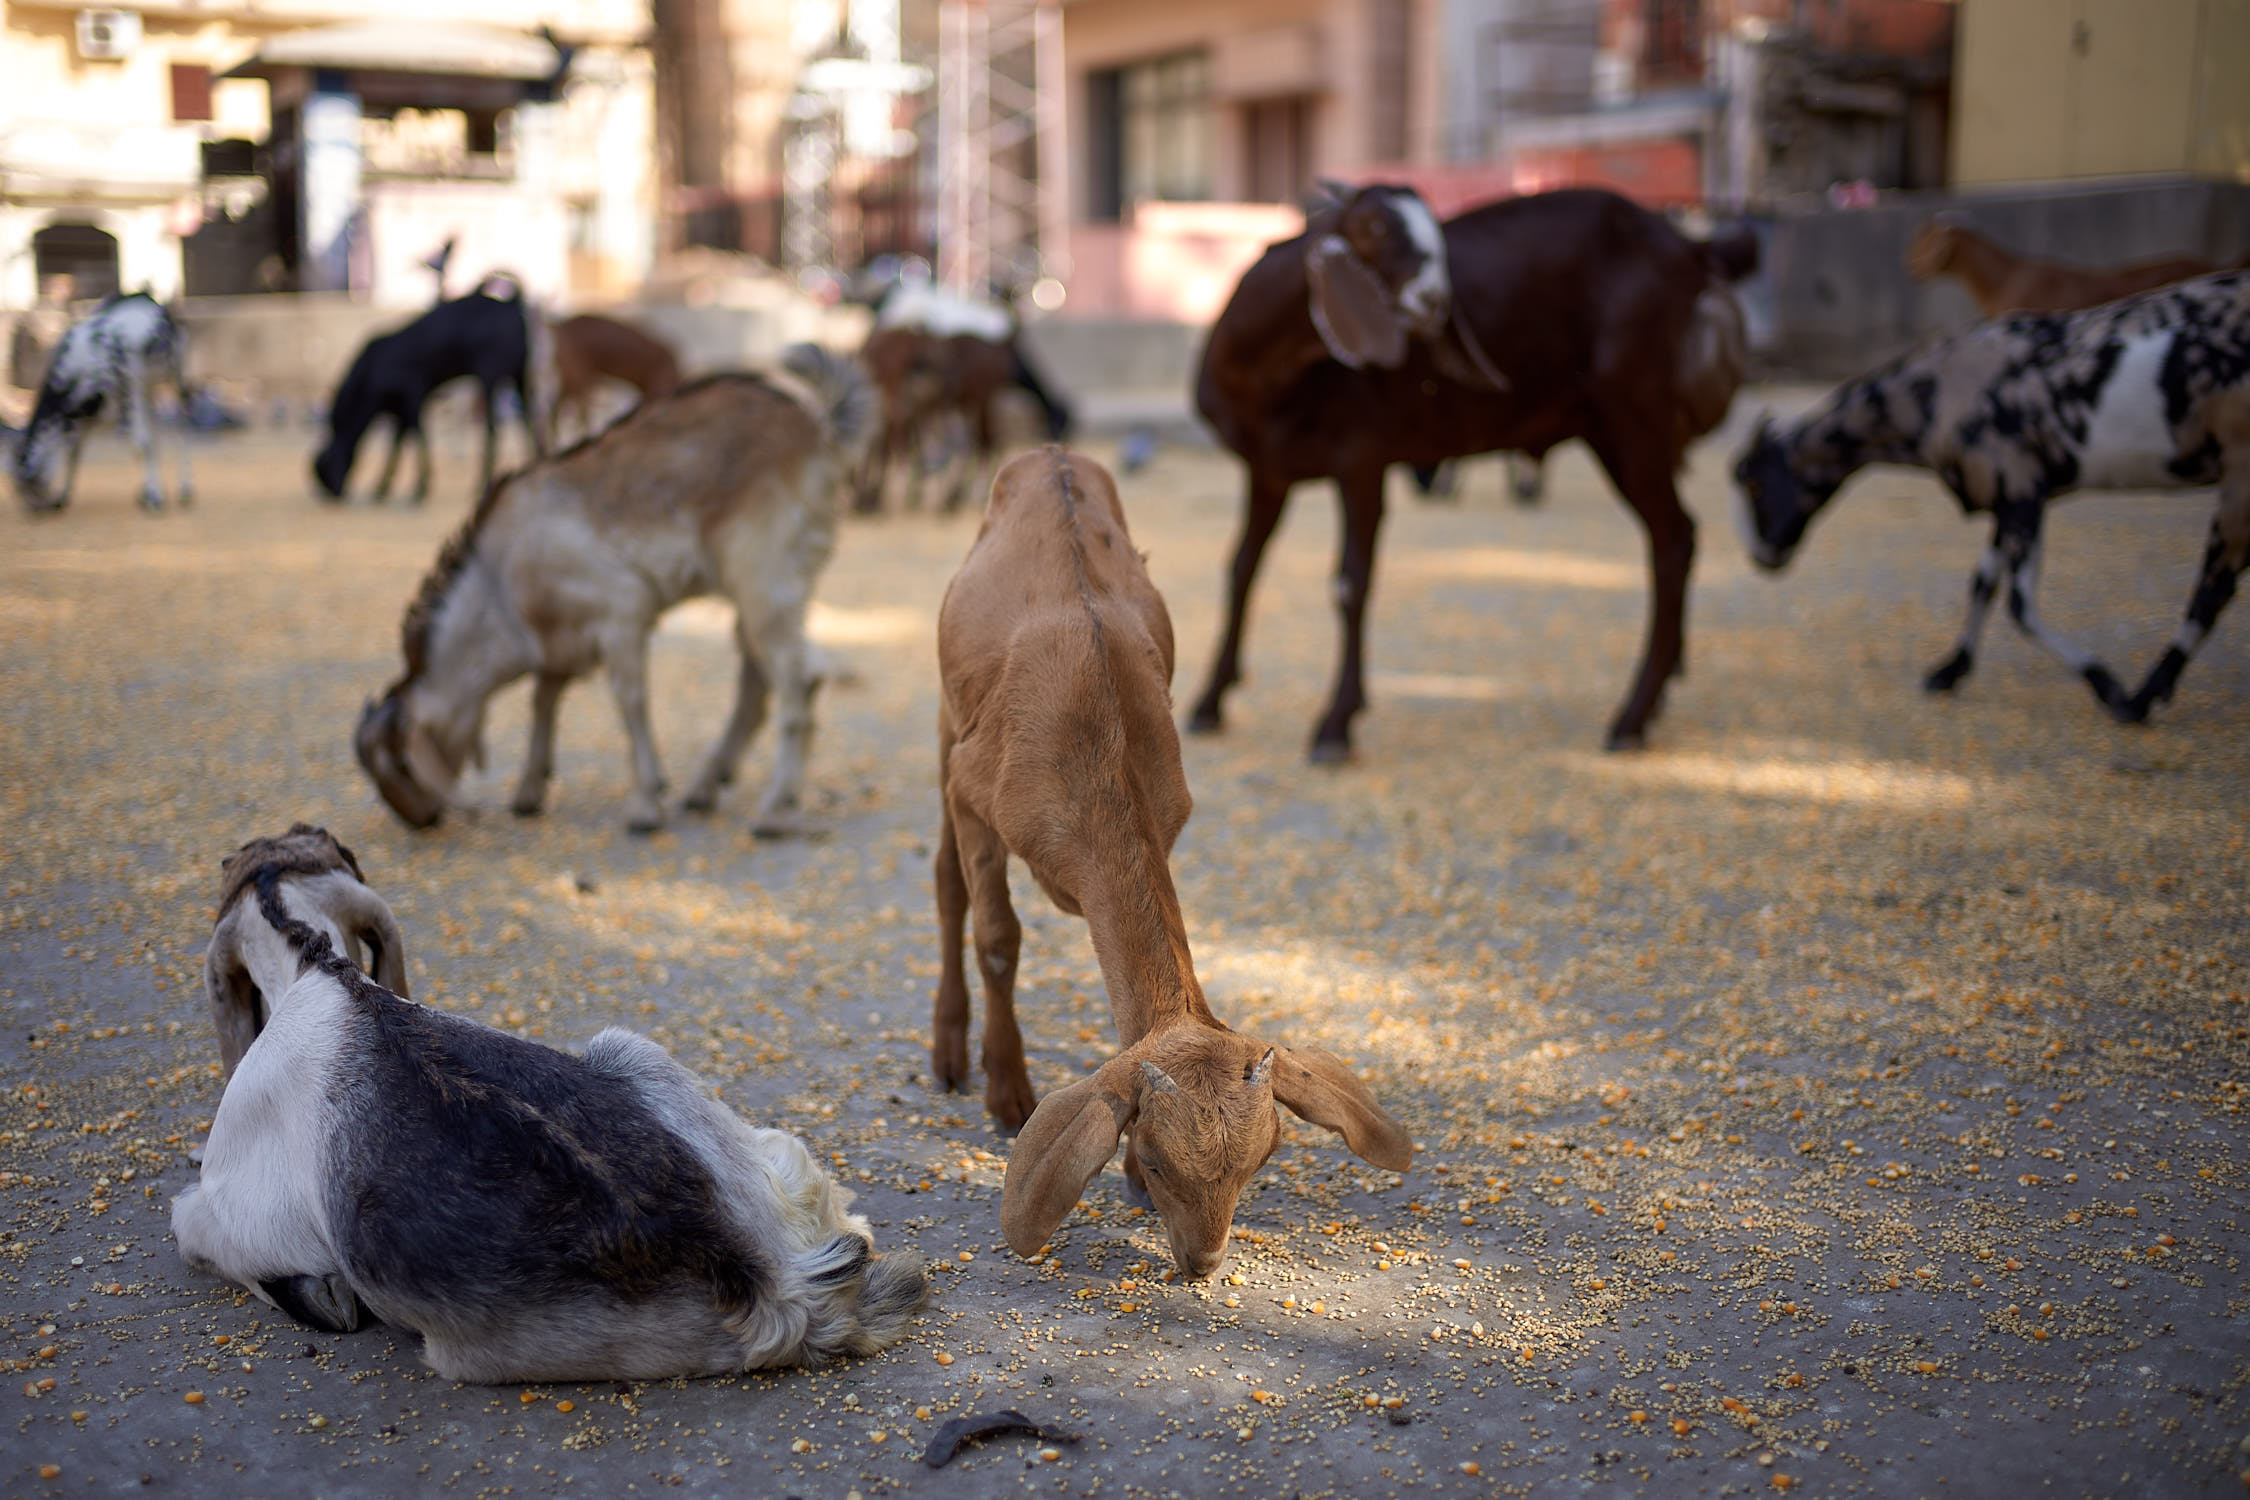 Goats roaming the streets of Jaipur